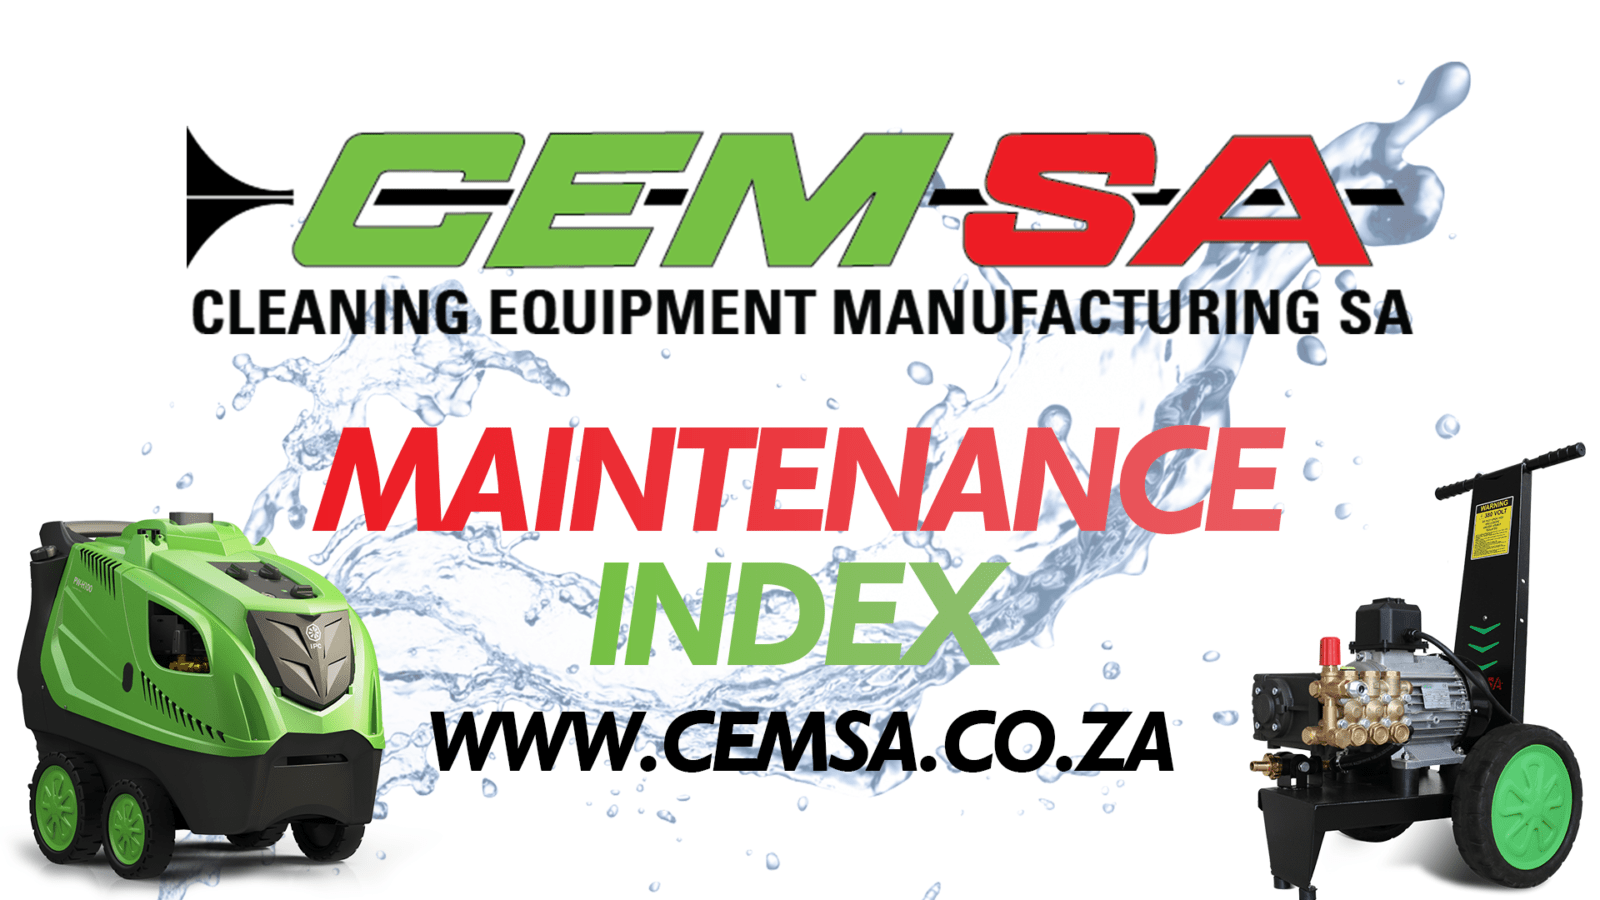 CEMSA's Maintenance Index